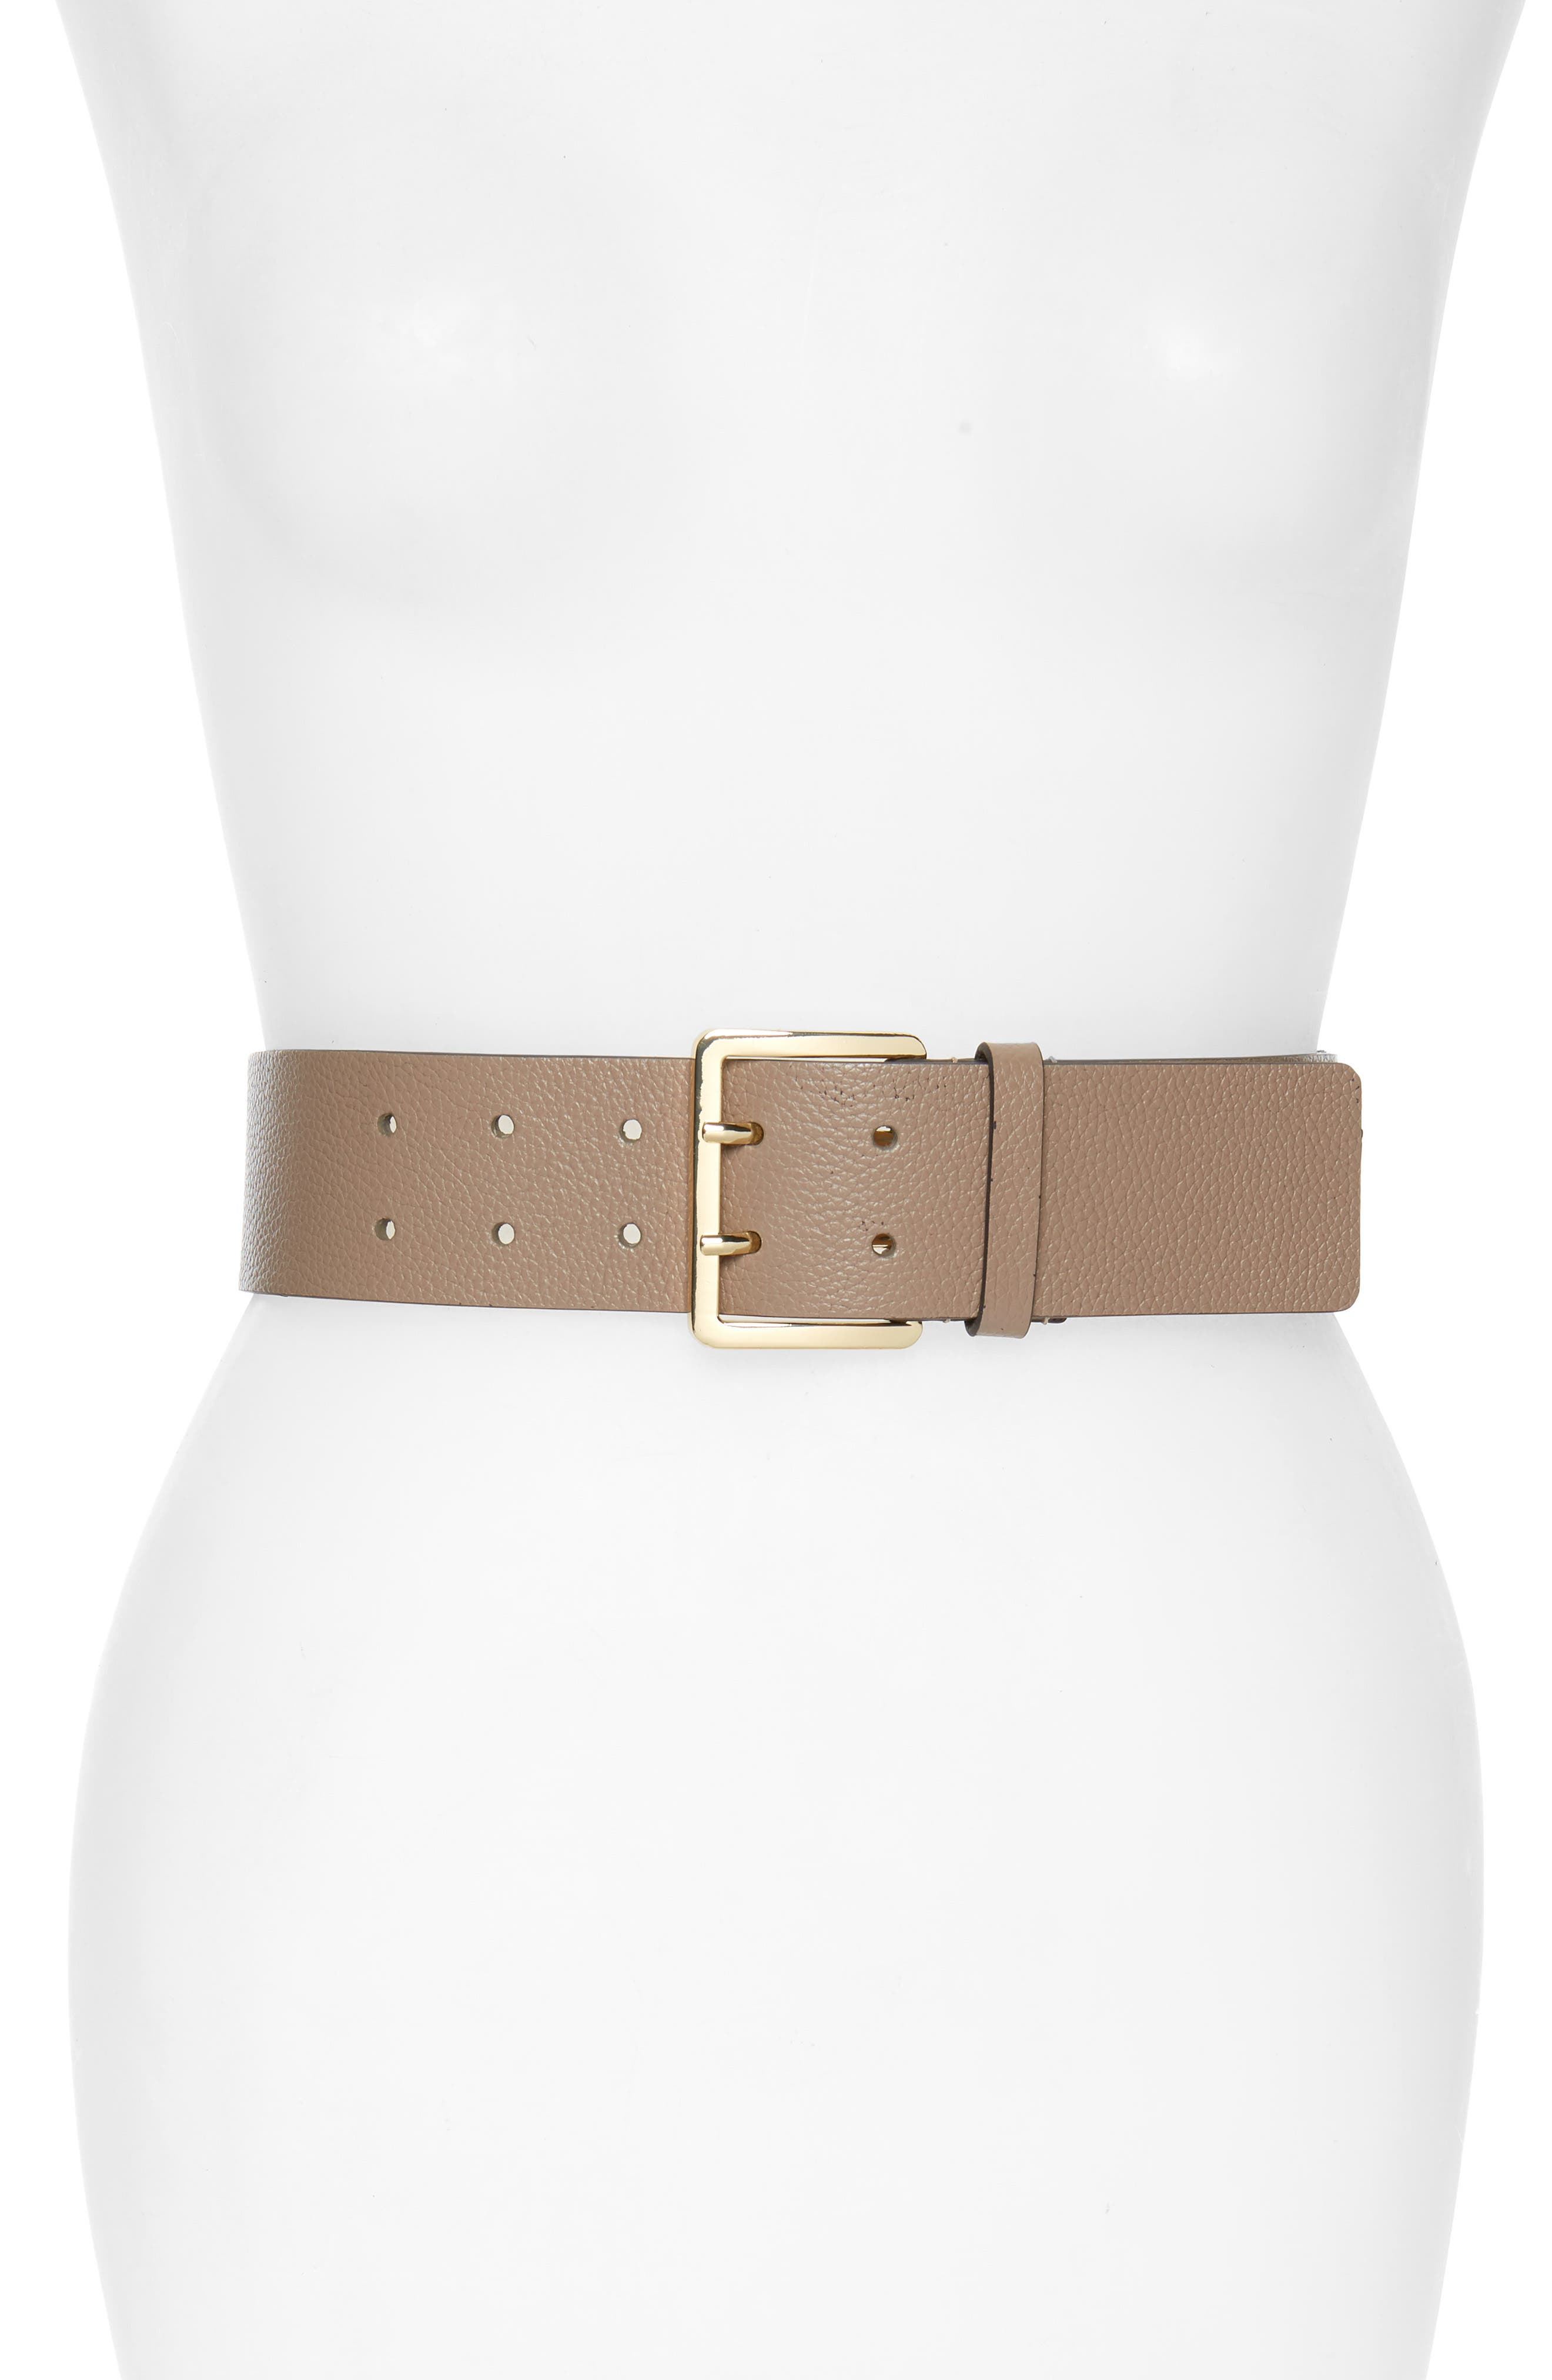 MICHAEL MICHAEL KORS Suede Fringe Leather Belt, Main, color, TRUFFLE/ LIGHT POL GOLD